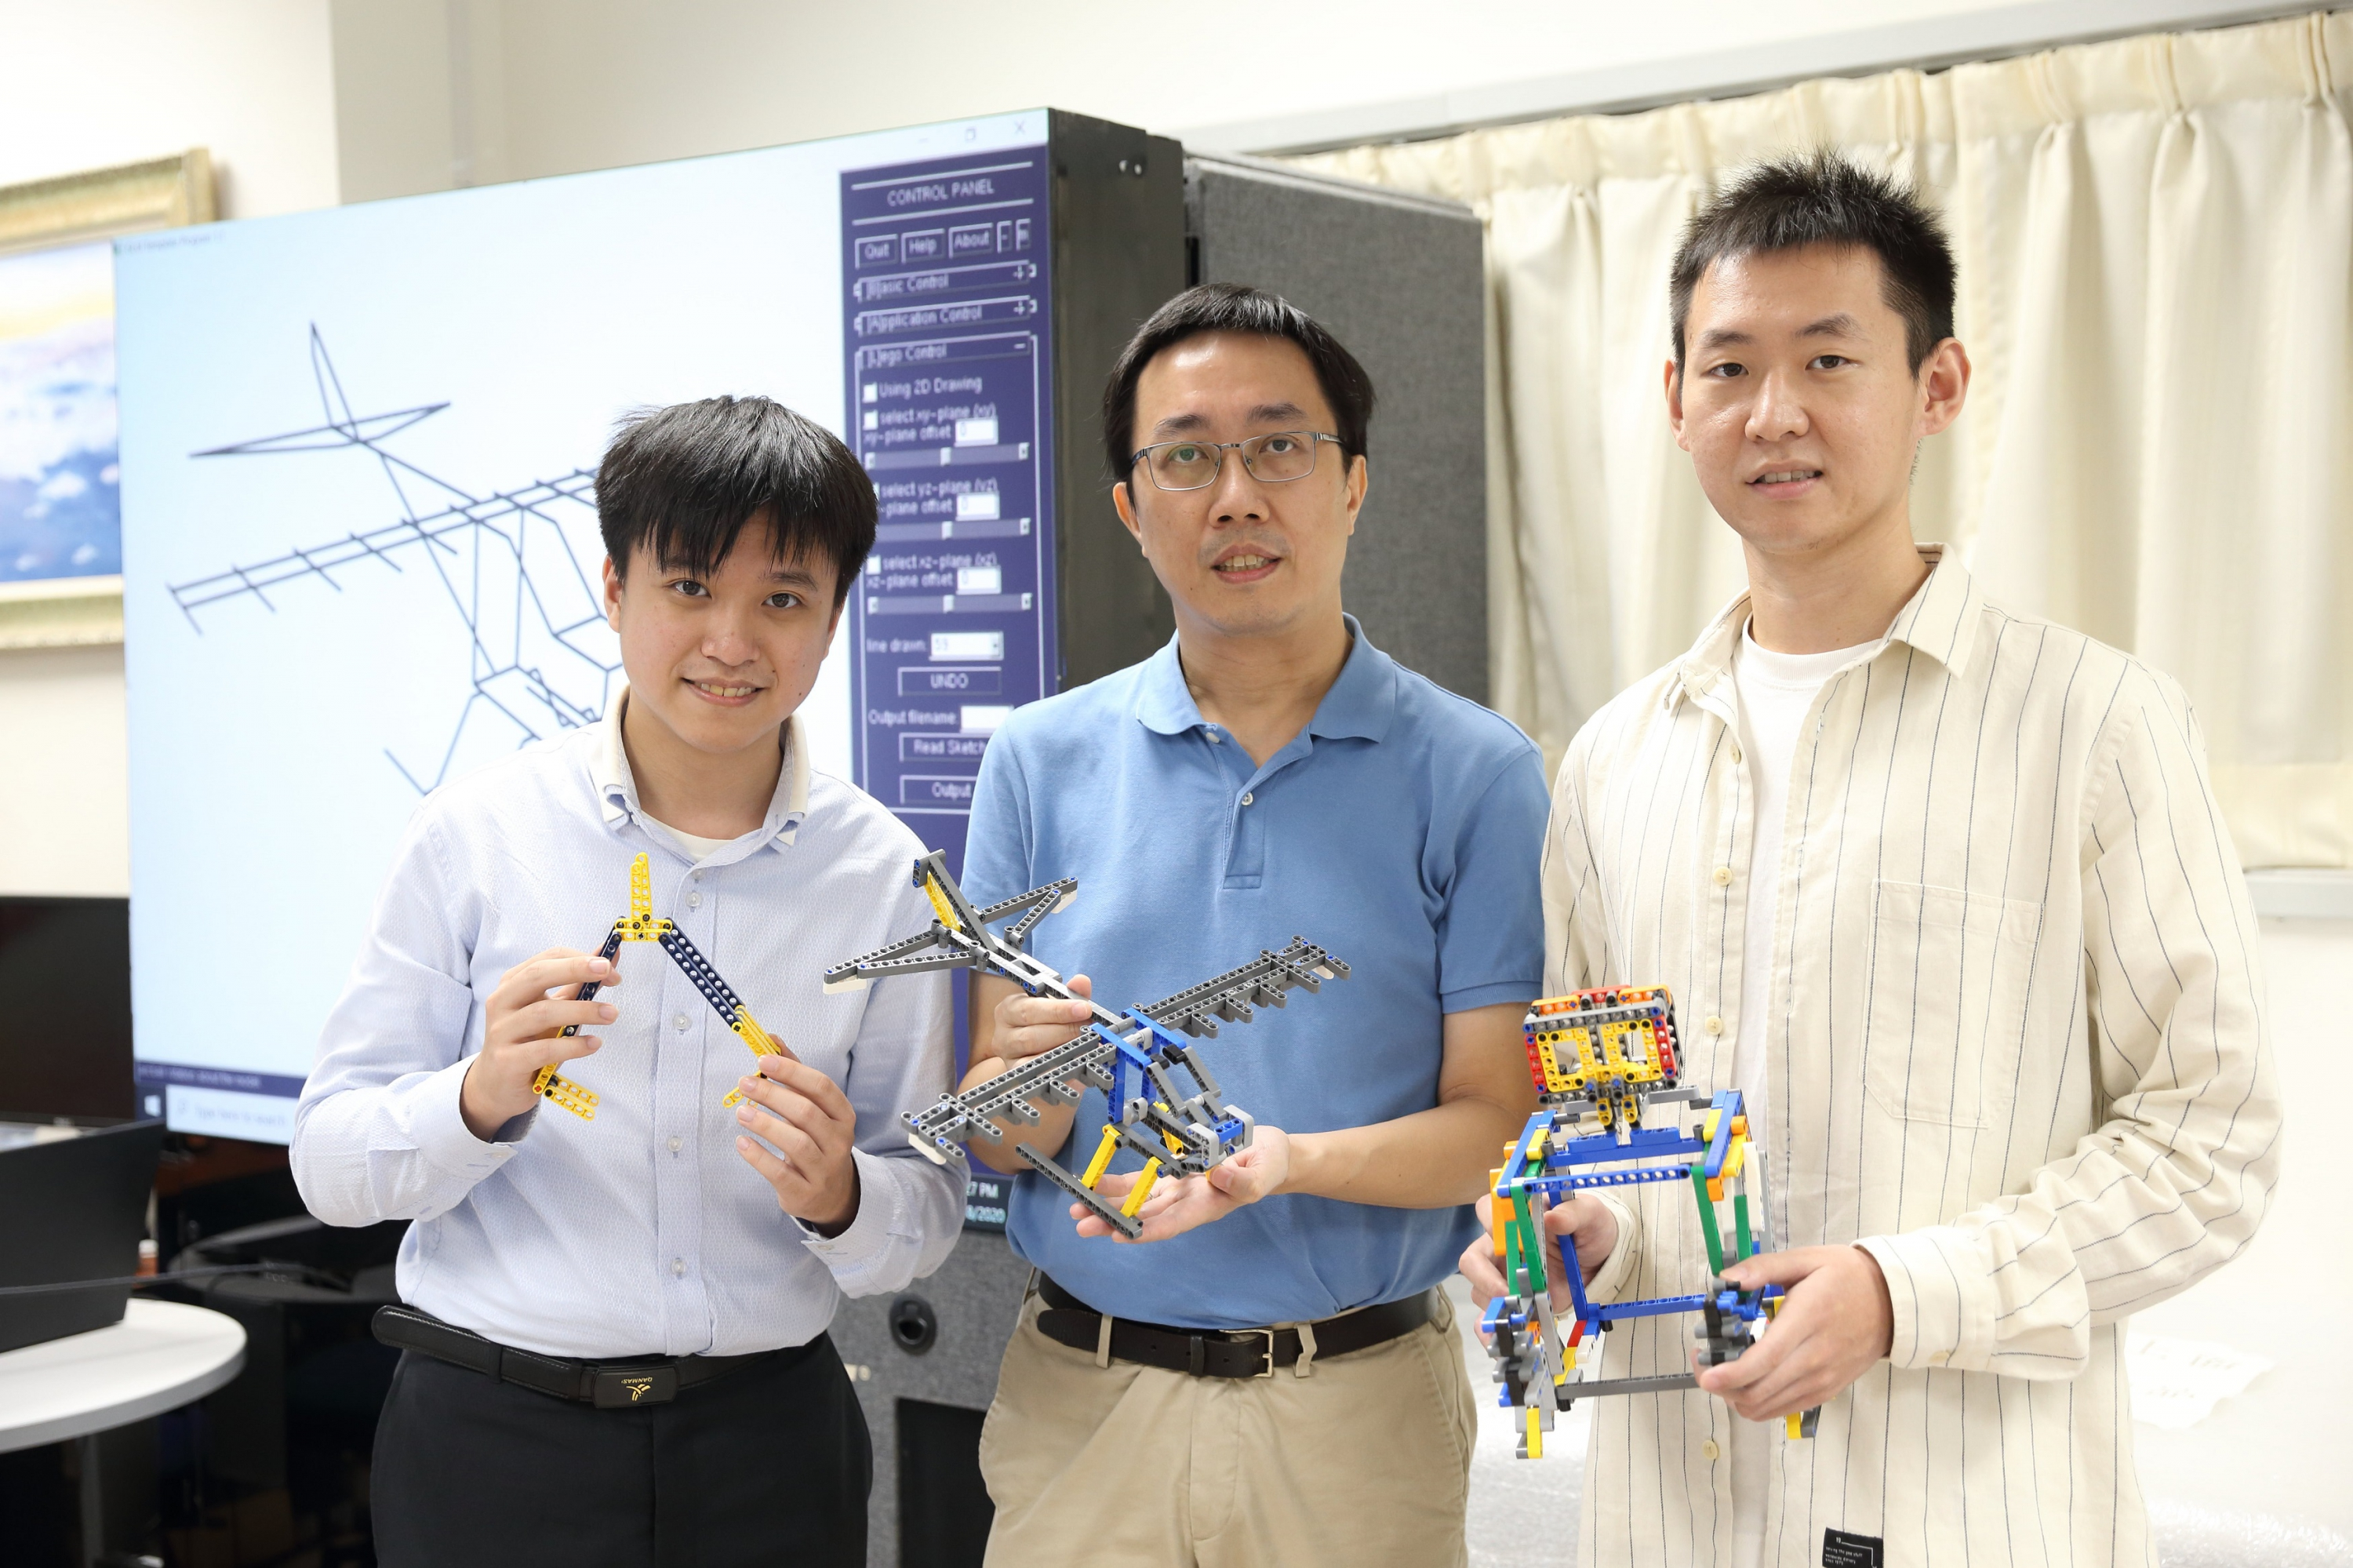 Hao XU (right) studies computational design of assembly blocks, together with Ka-Kei HU (left), under the supervision of Professor Chi-wing FU from the Department of Computer Science and Engineering at CUHK.